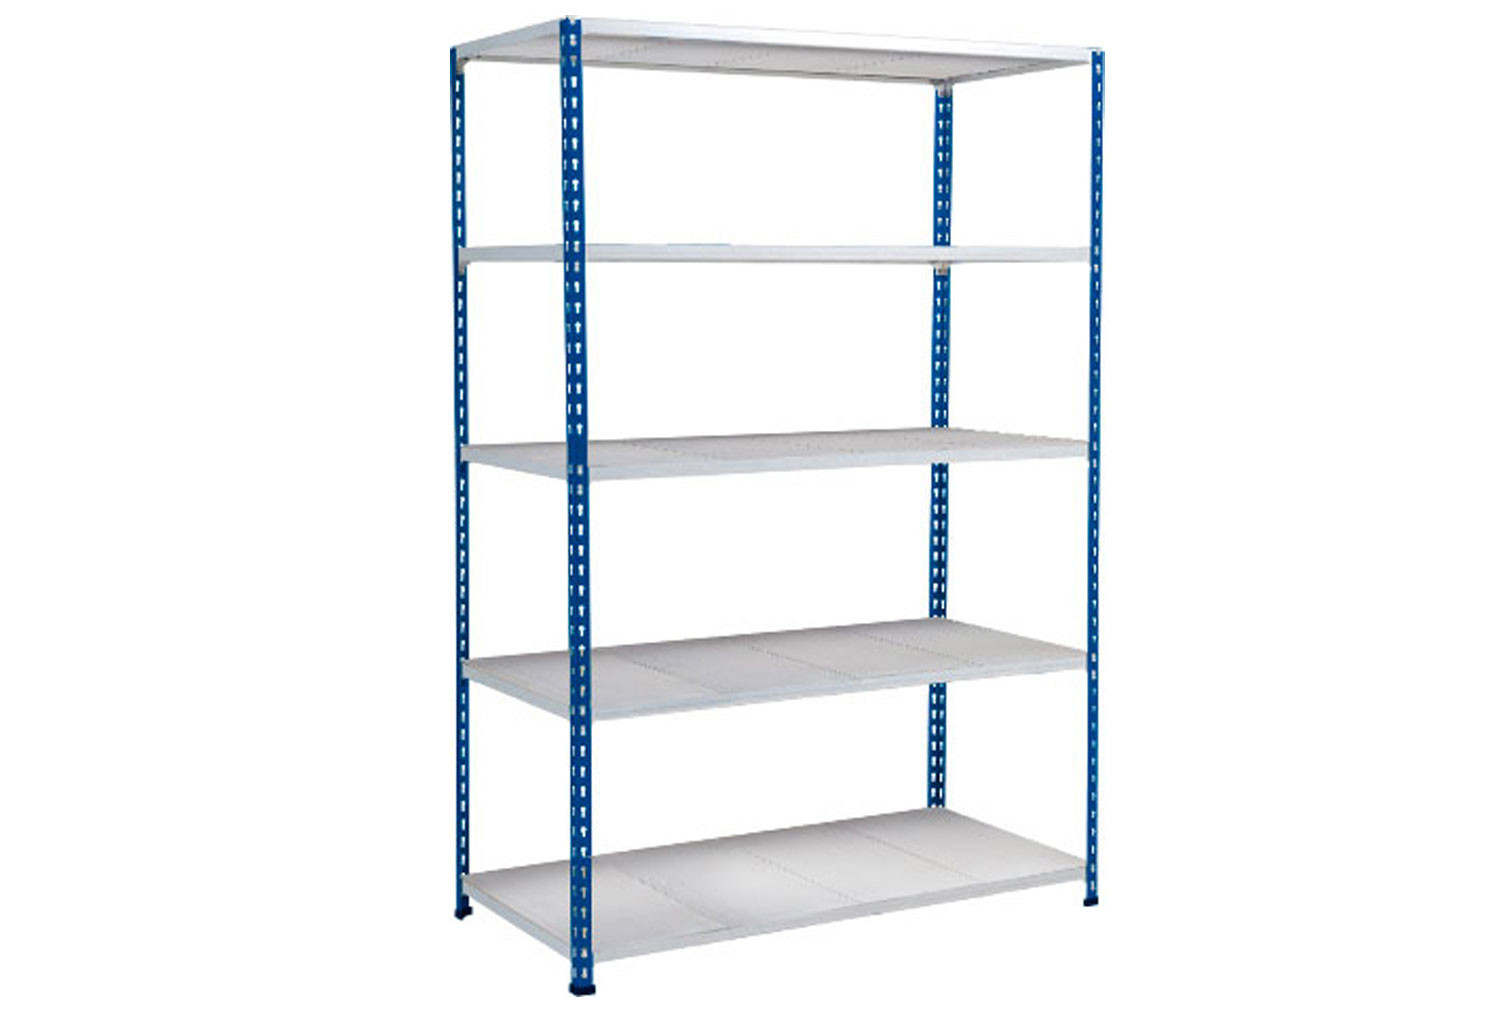 Rapid 2 Shelving With 5 Galvanized Shelves 1220wx1600h (Blue/Grey)